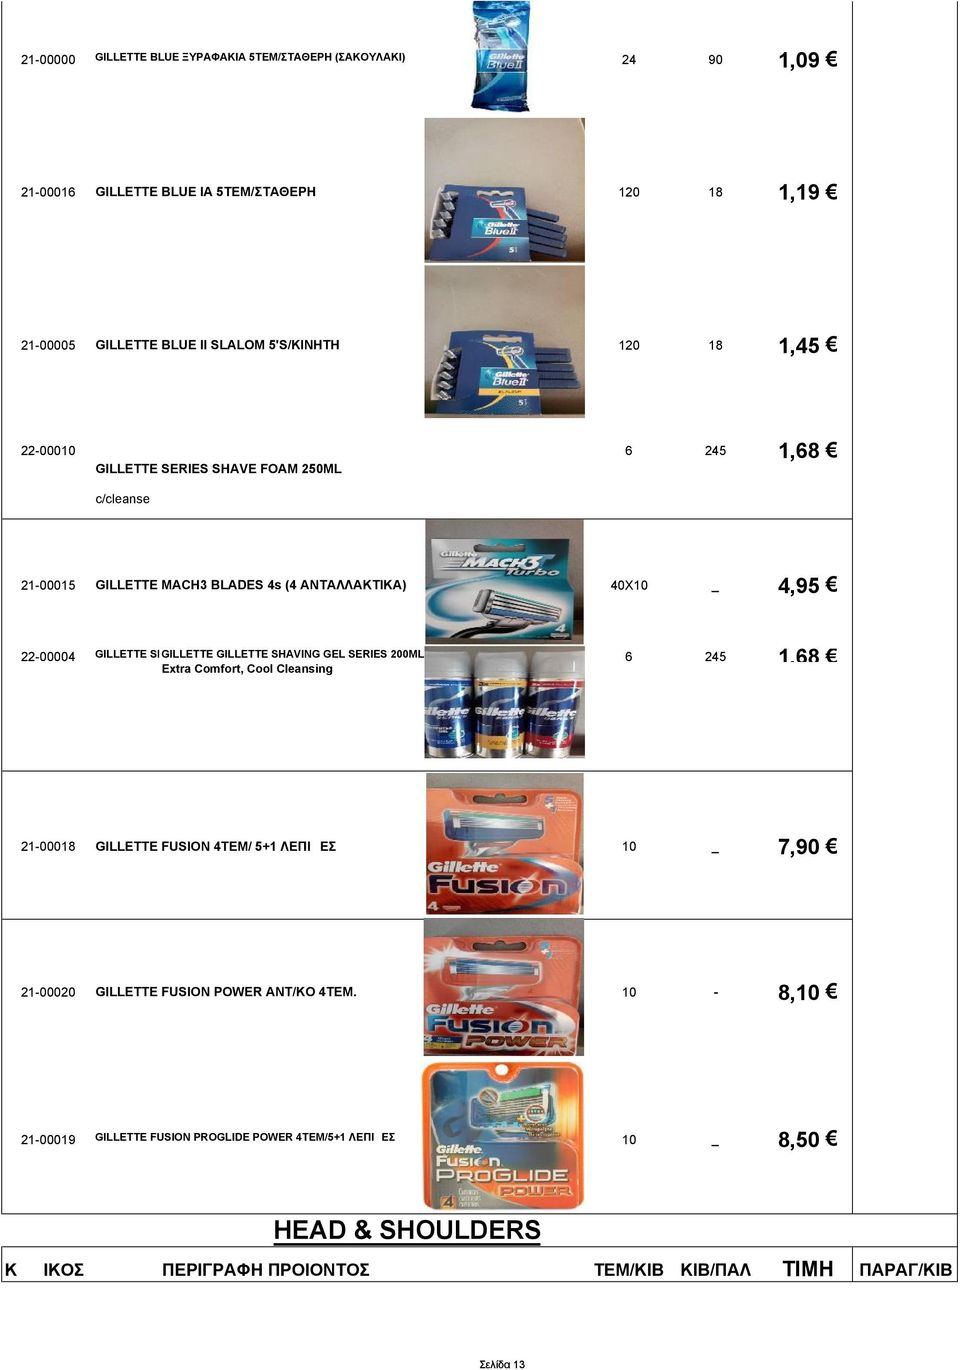 40X10 4,95 22-00004 GILLETTE SHAVING GILLETTE GEL SHAVING GILLETTE SERIES GEL 200ML SHAVING SERIES GEL 200ML SERIES 200ML 5 1,8 Extra Comfort, Cool Cleansing 21-00018